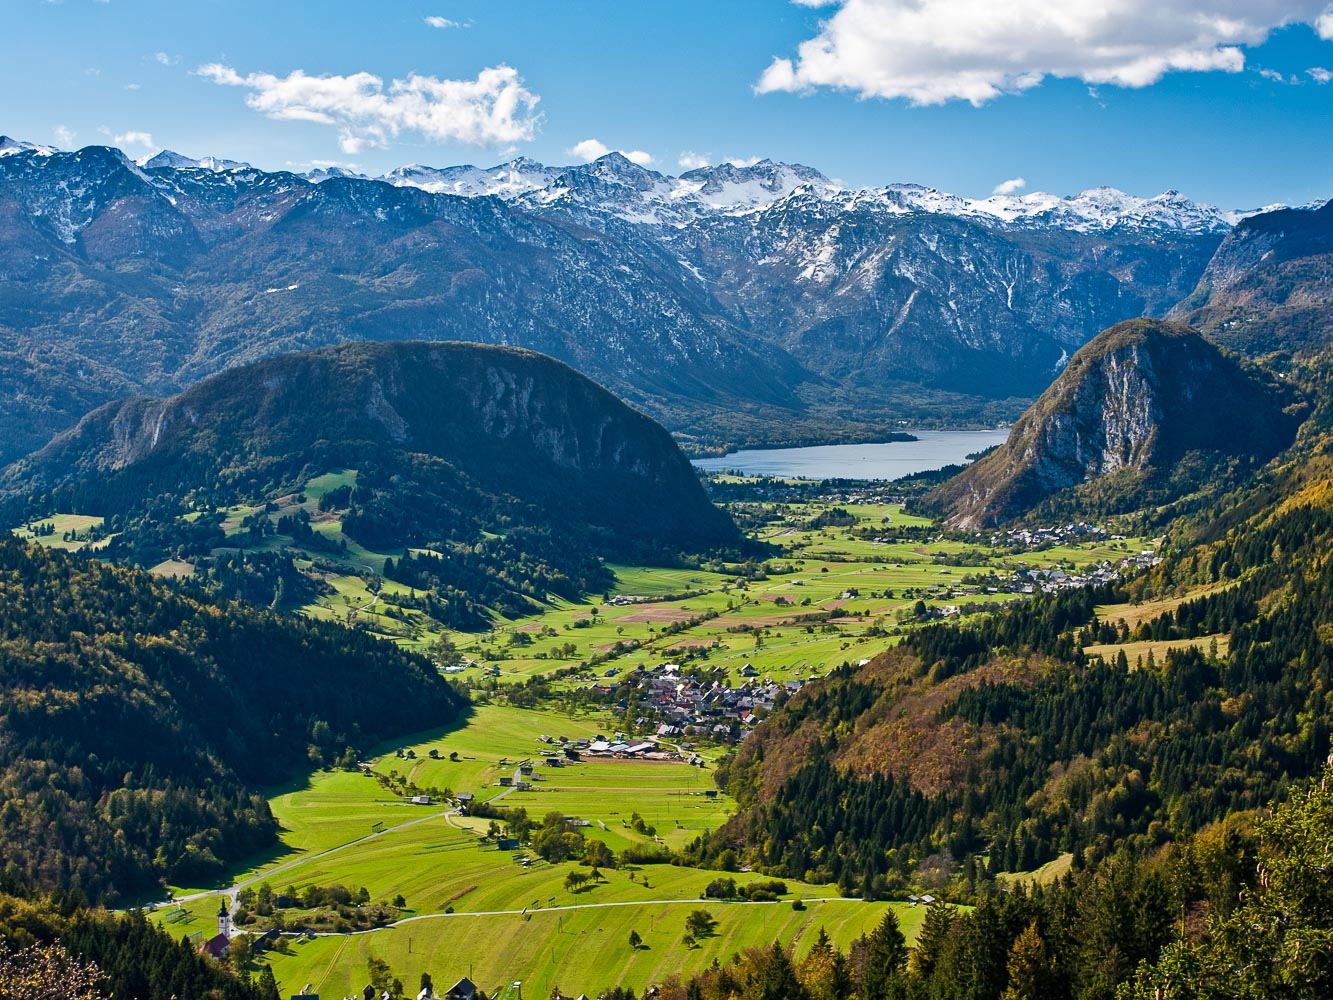 Lake Bohinj and the Upper Bohinj Valley as seen from the Vodnikov Razglednik viewpoint in the Triglav National Park, Vogel Ski Resort is in the background